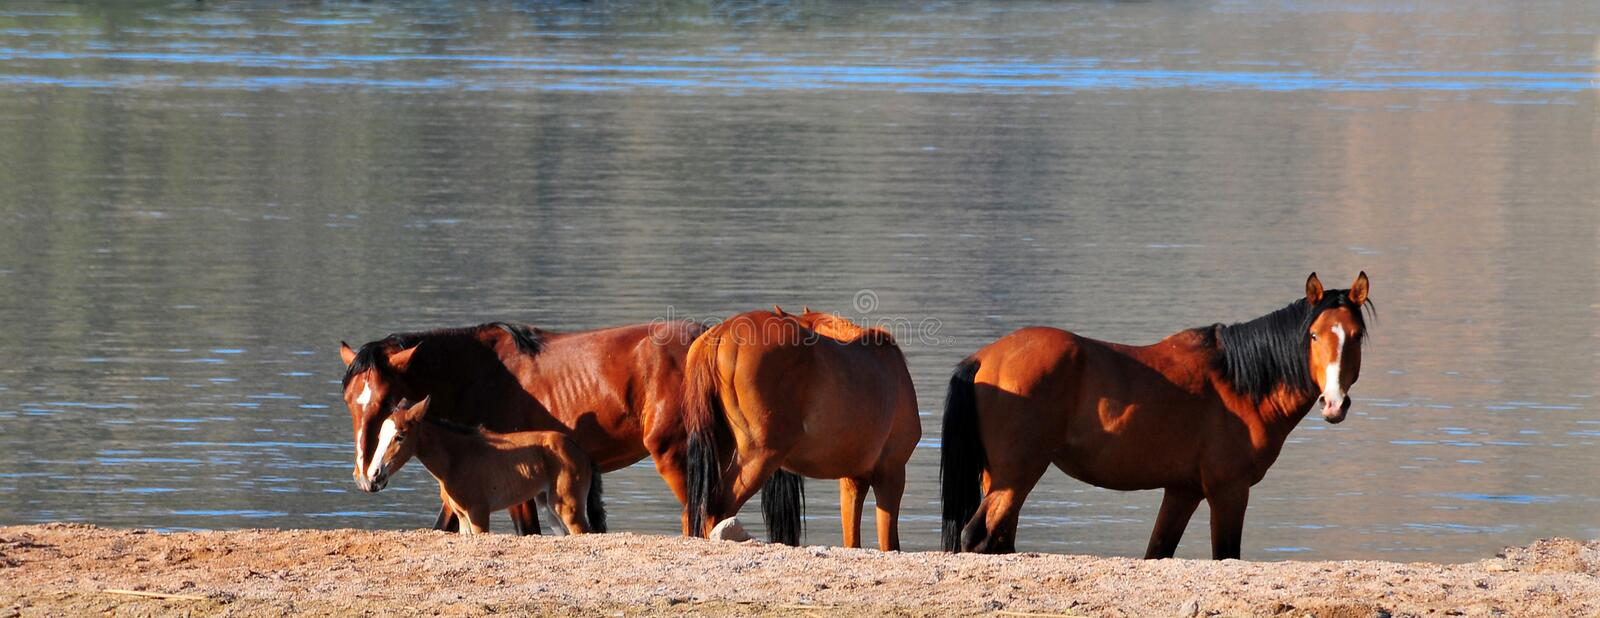 Wild Horses Playing For Fun Running Free royalty free stock photo